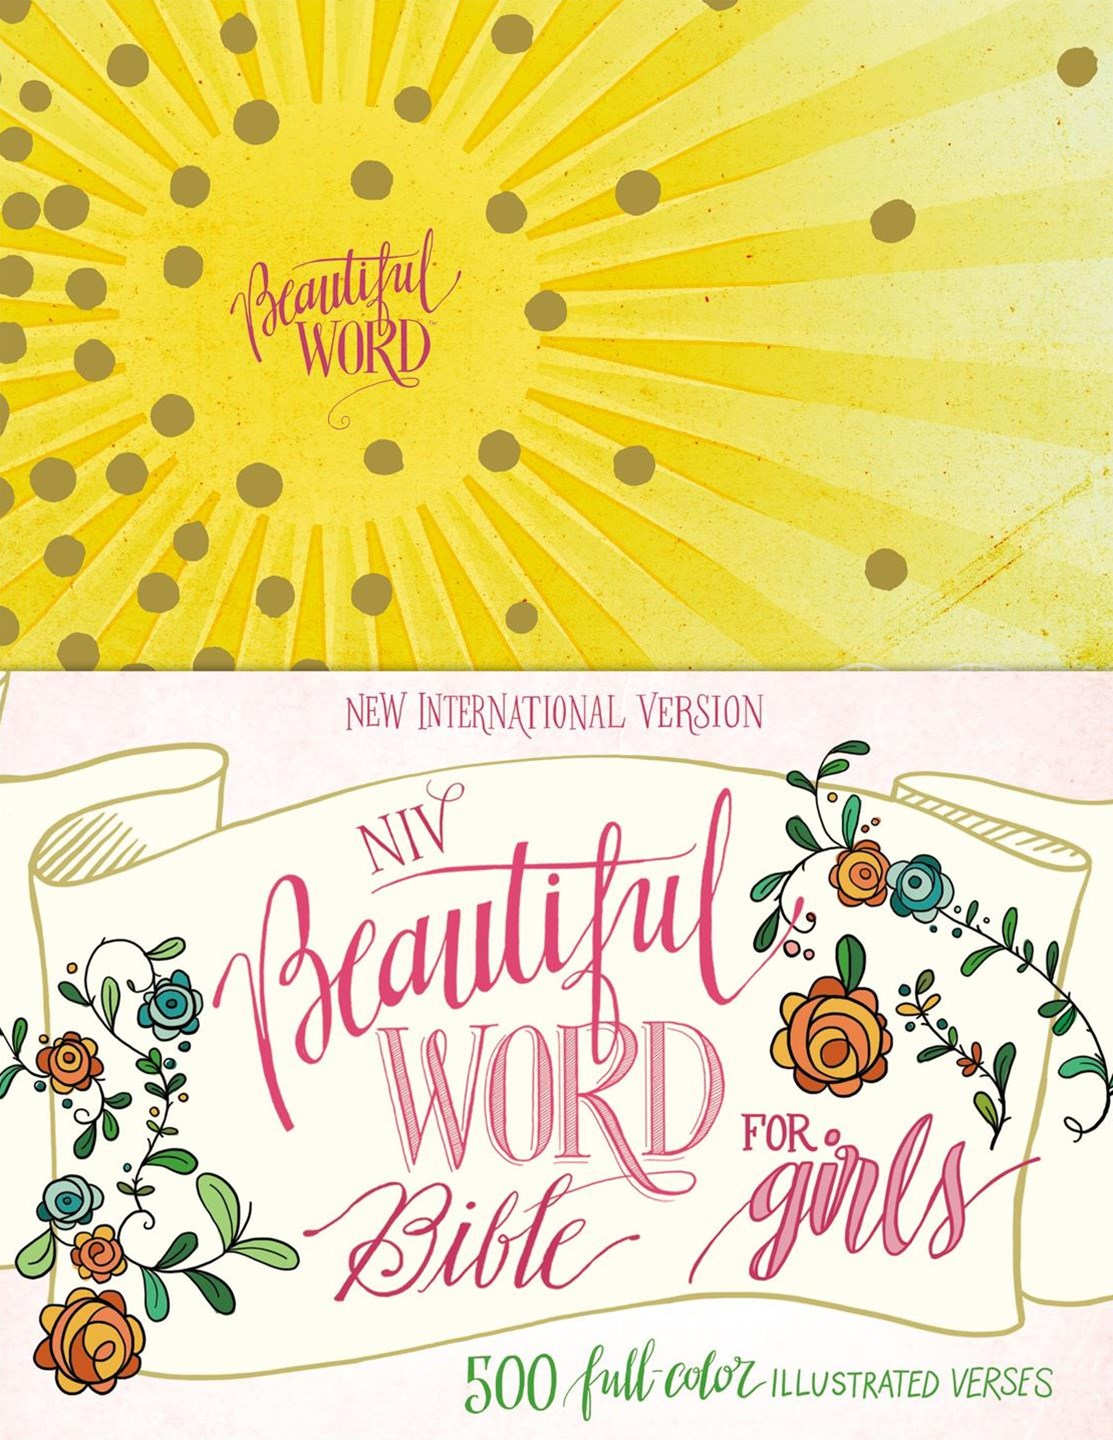 NIV Beautiful Word Bible For Girls [Yellow]